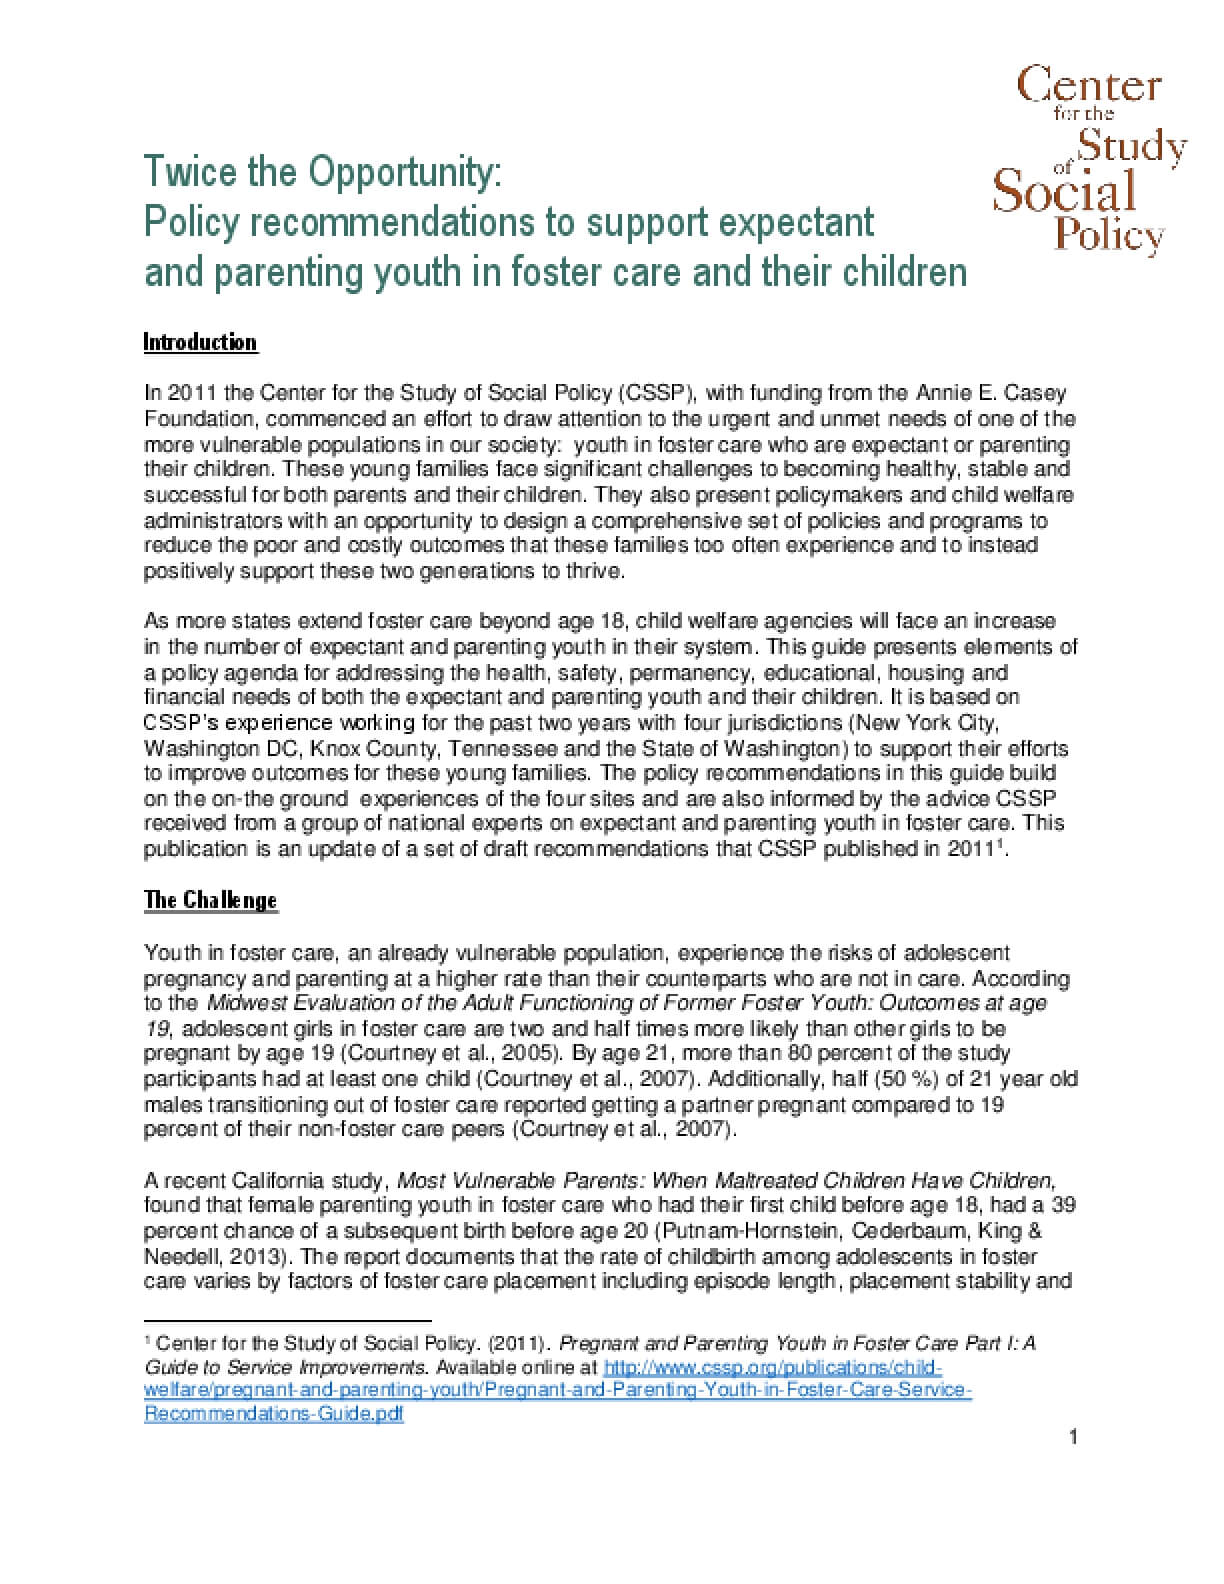 Twice the Opportunity:  Policy Recommendations to Support Expectant and Parenting Youth in Foster Care and Their Children